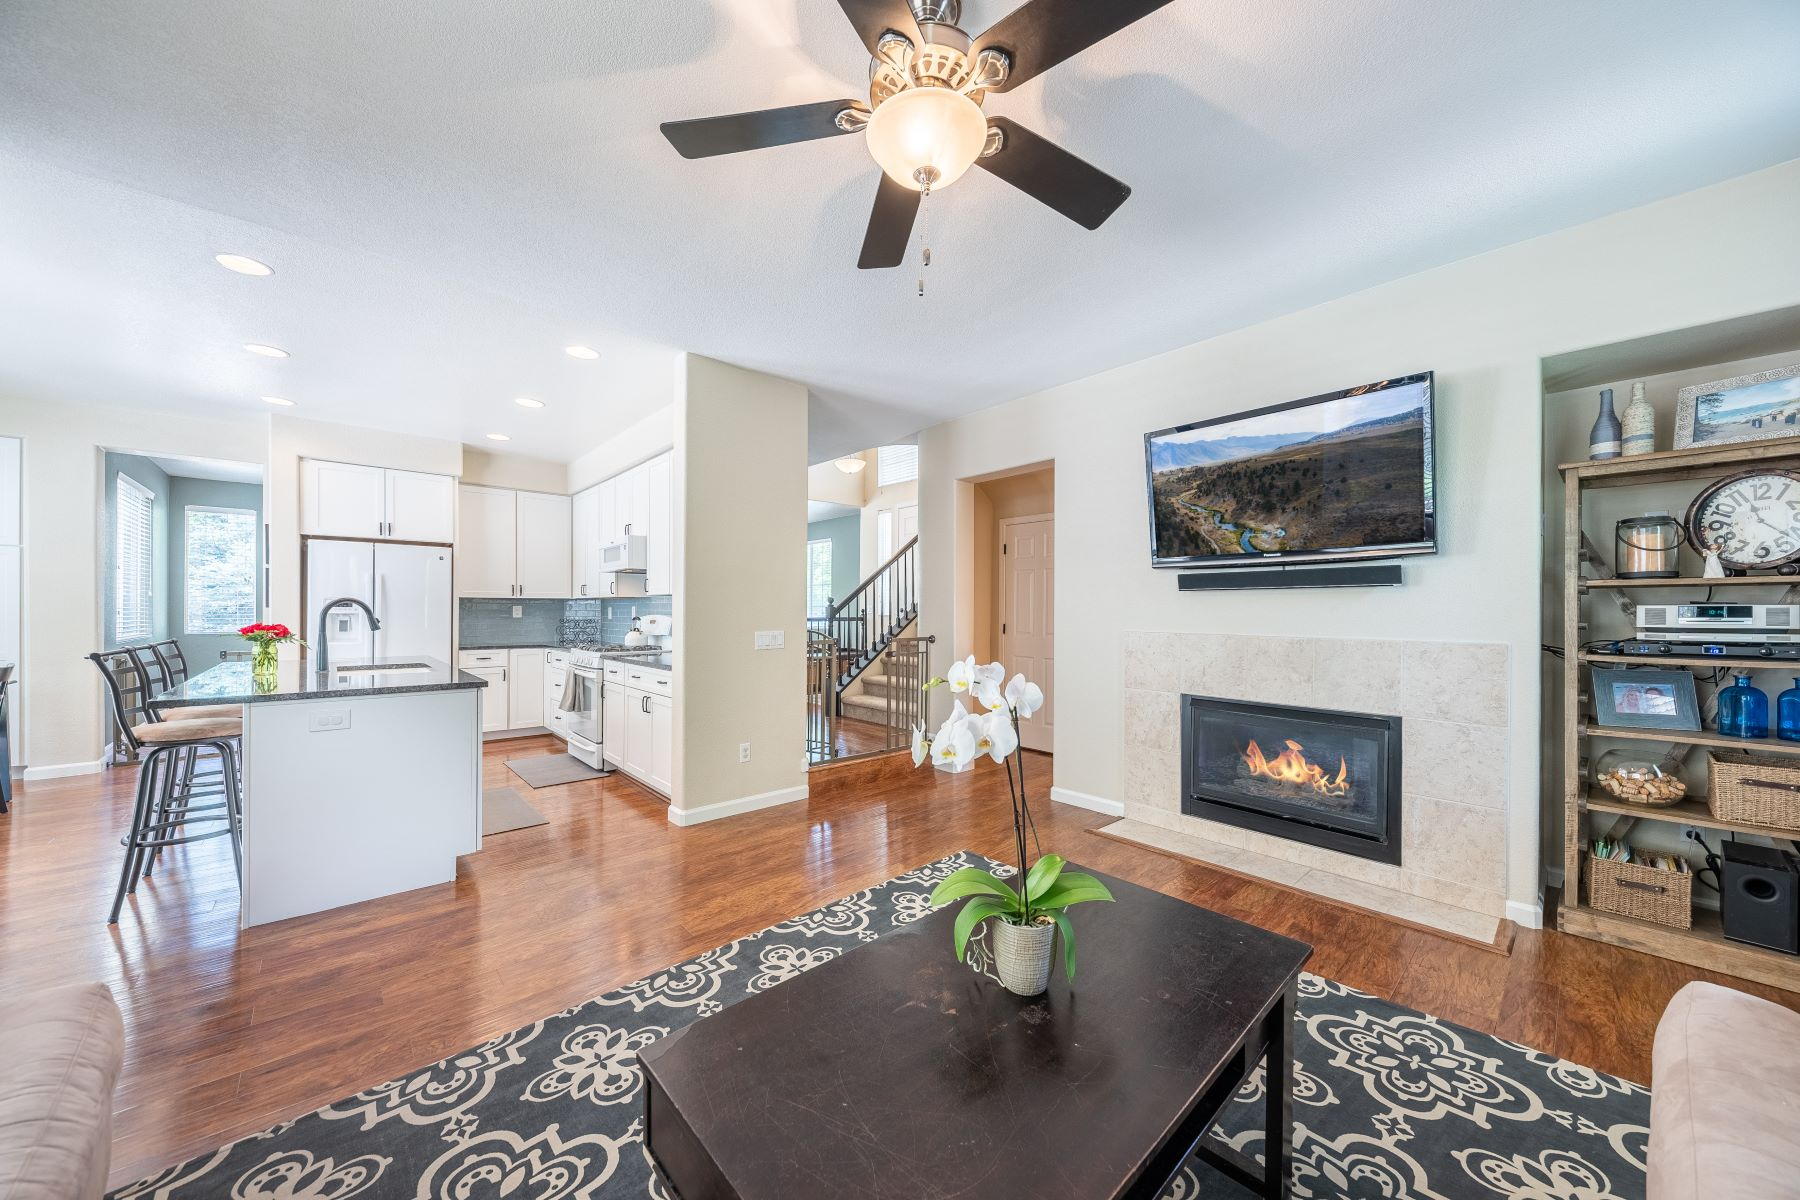 Single Family Homes for Active at Completely Remodeled Two Story 4456 Kings Peak Cir. Sparks, Nevada 89436 United States